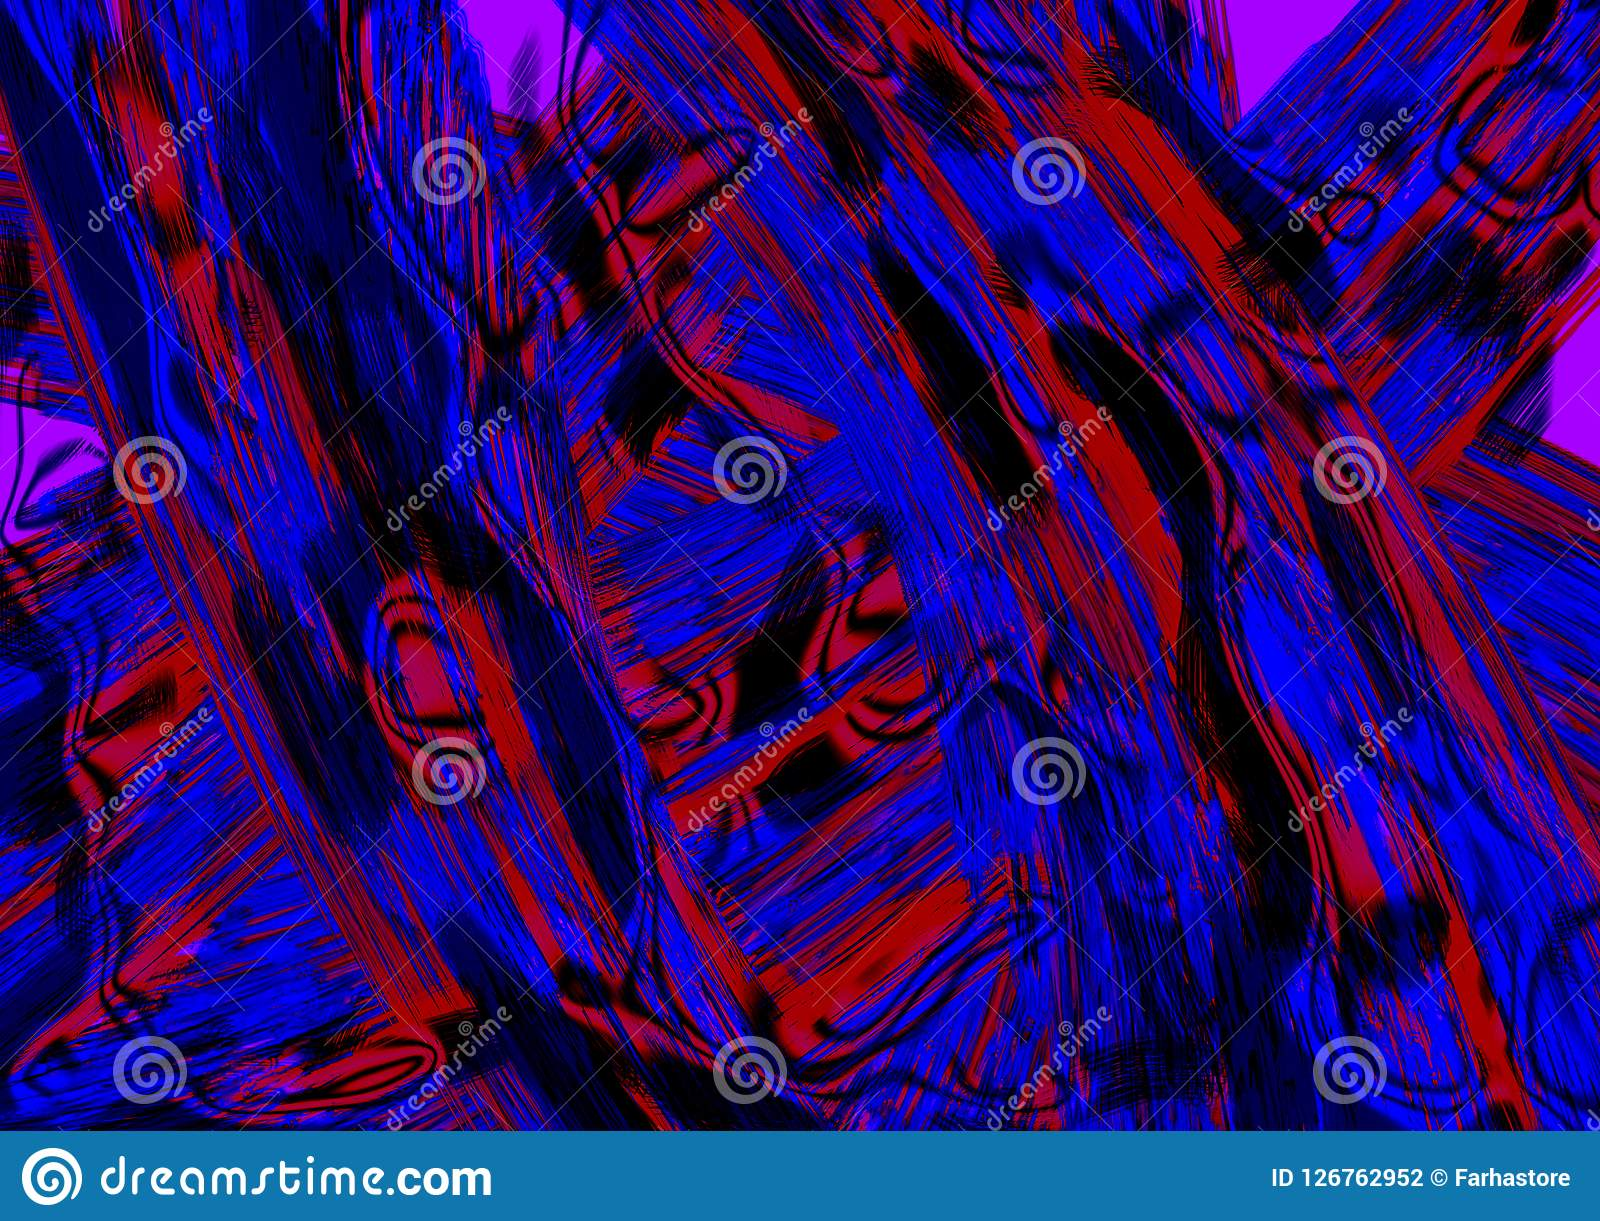 Texture Colorful Graphic Design And Modern Digital Abstract Art Gradient Effect With Multi Color Wallpaper Wall Pattern